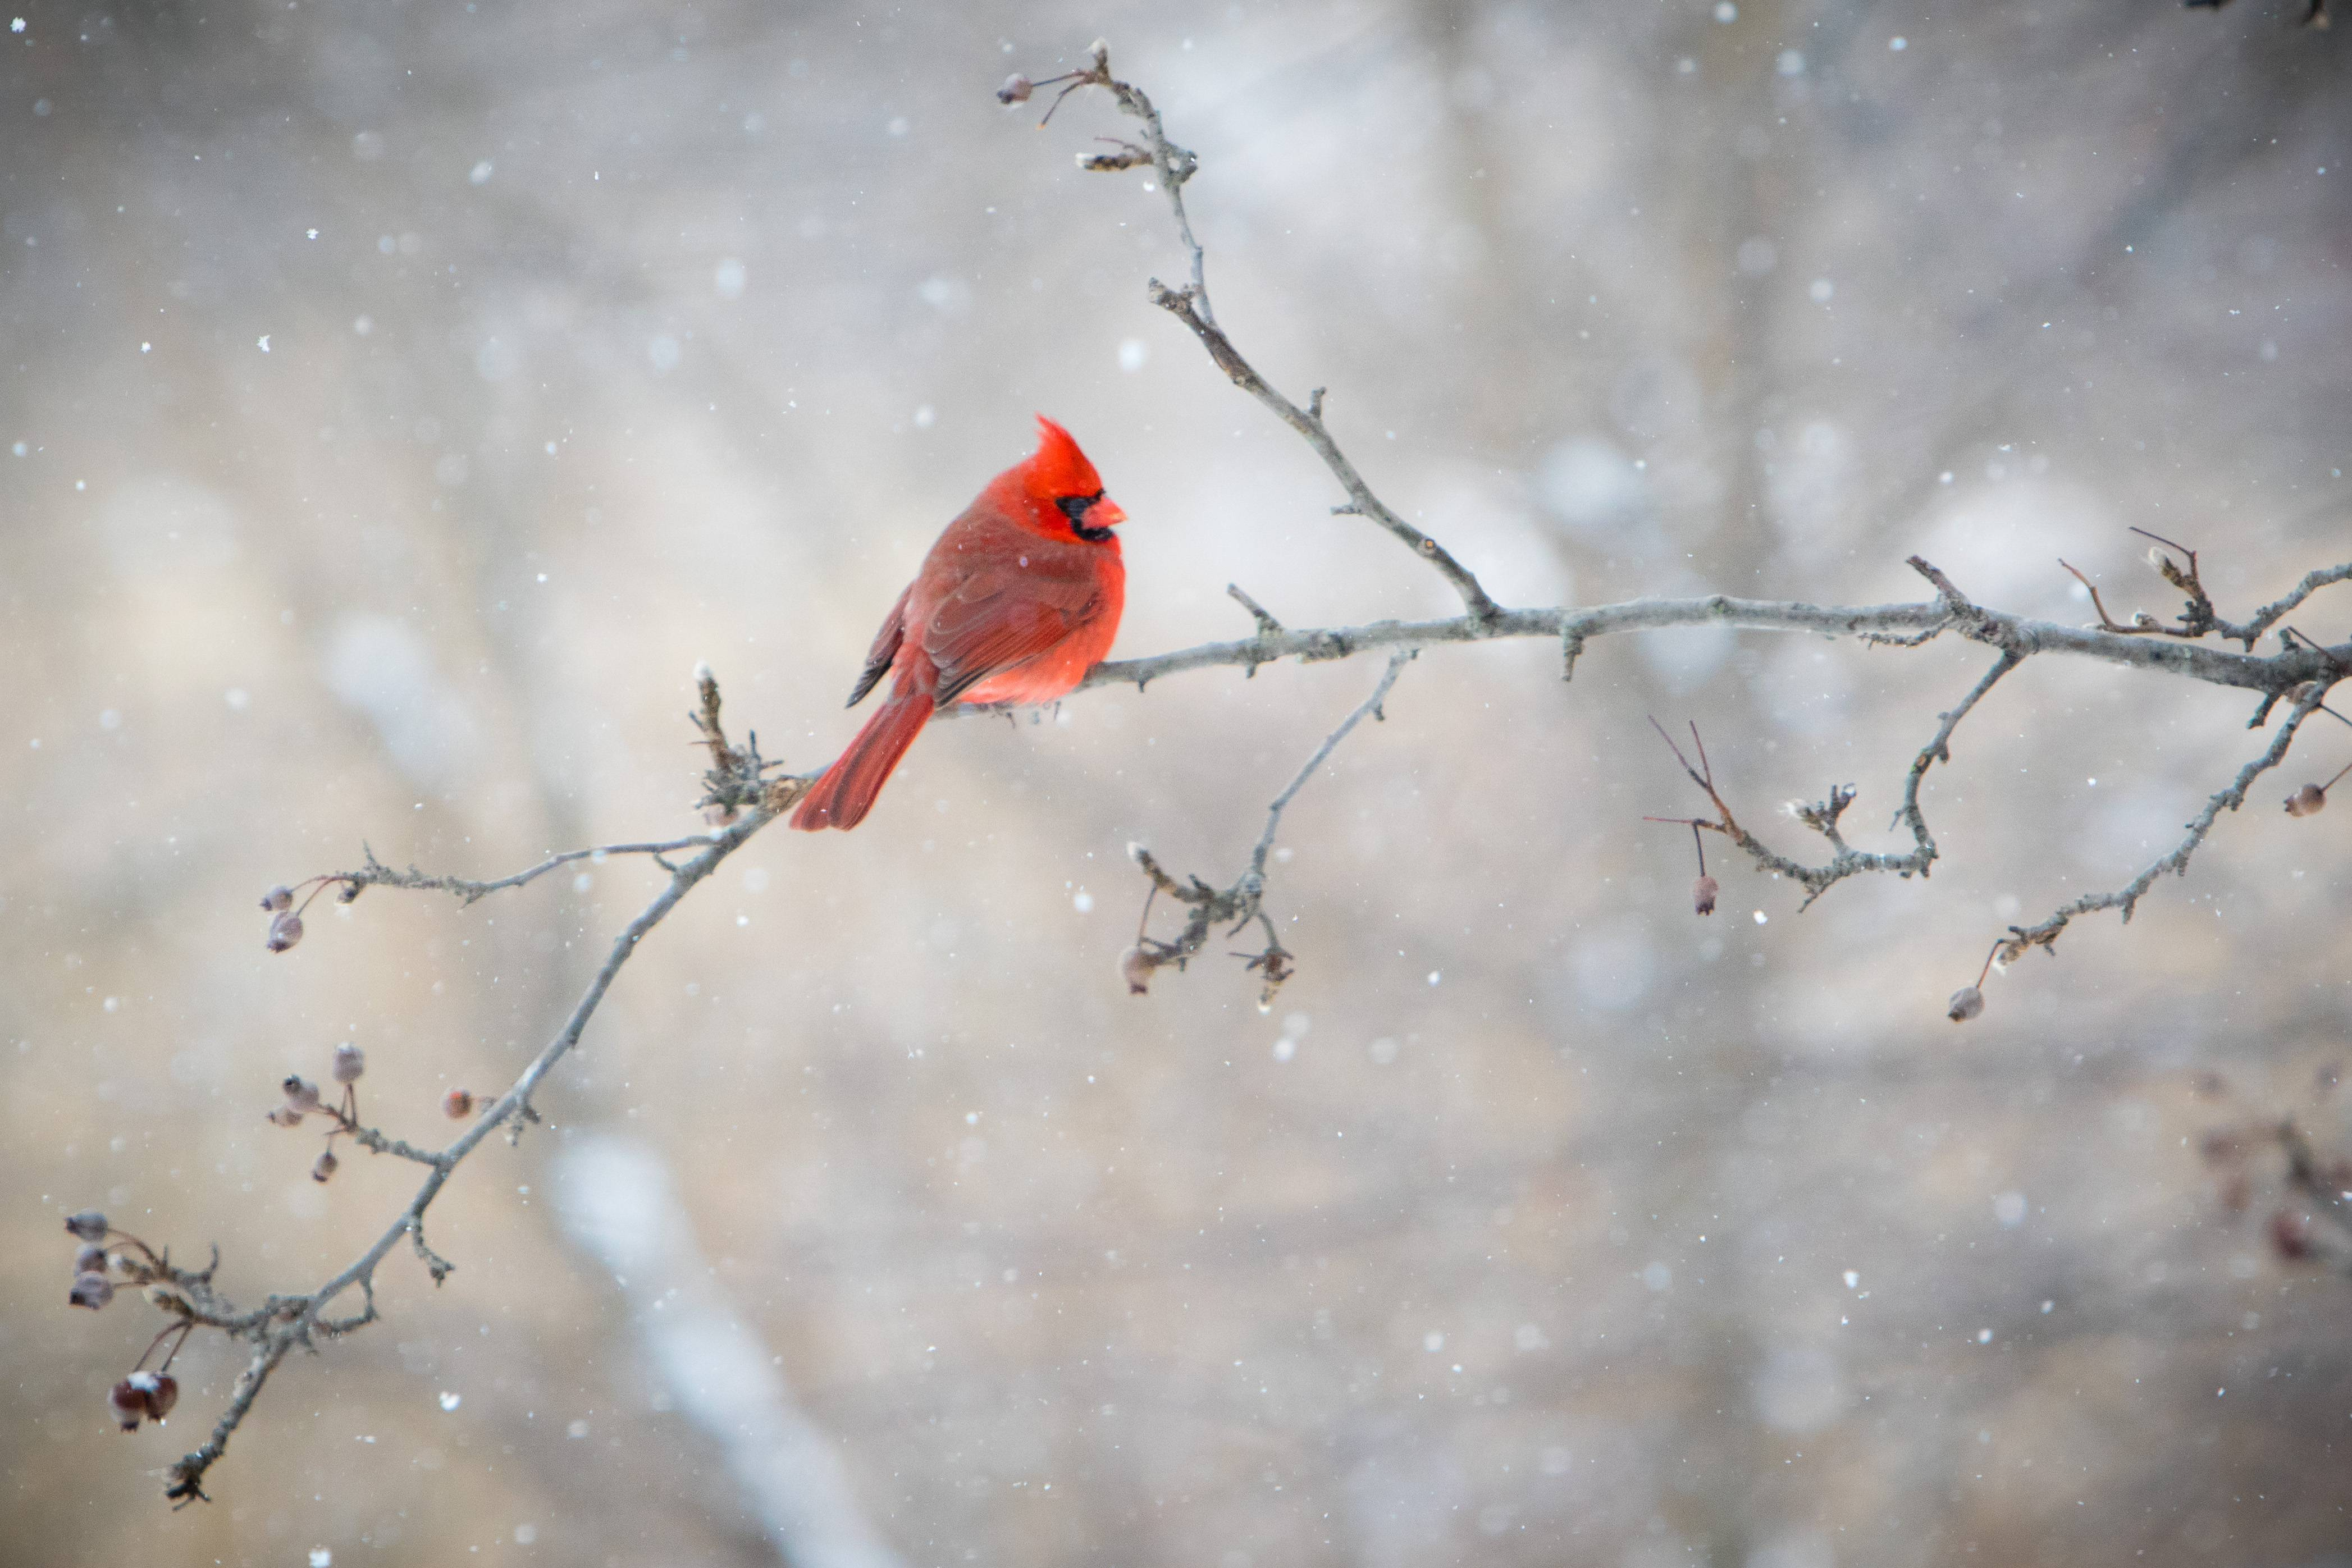 It's hard not to love the beauty of Cardinals on a snowy afternoon.